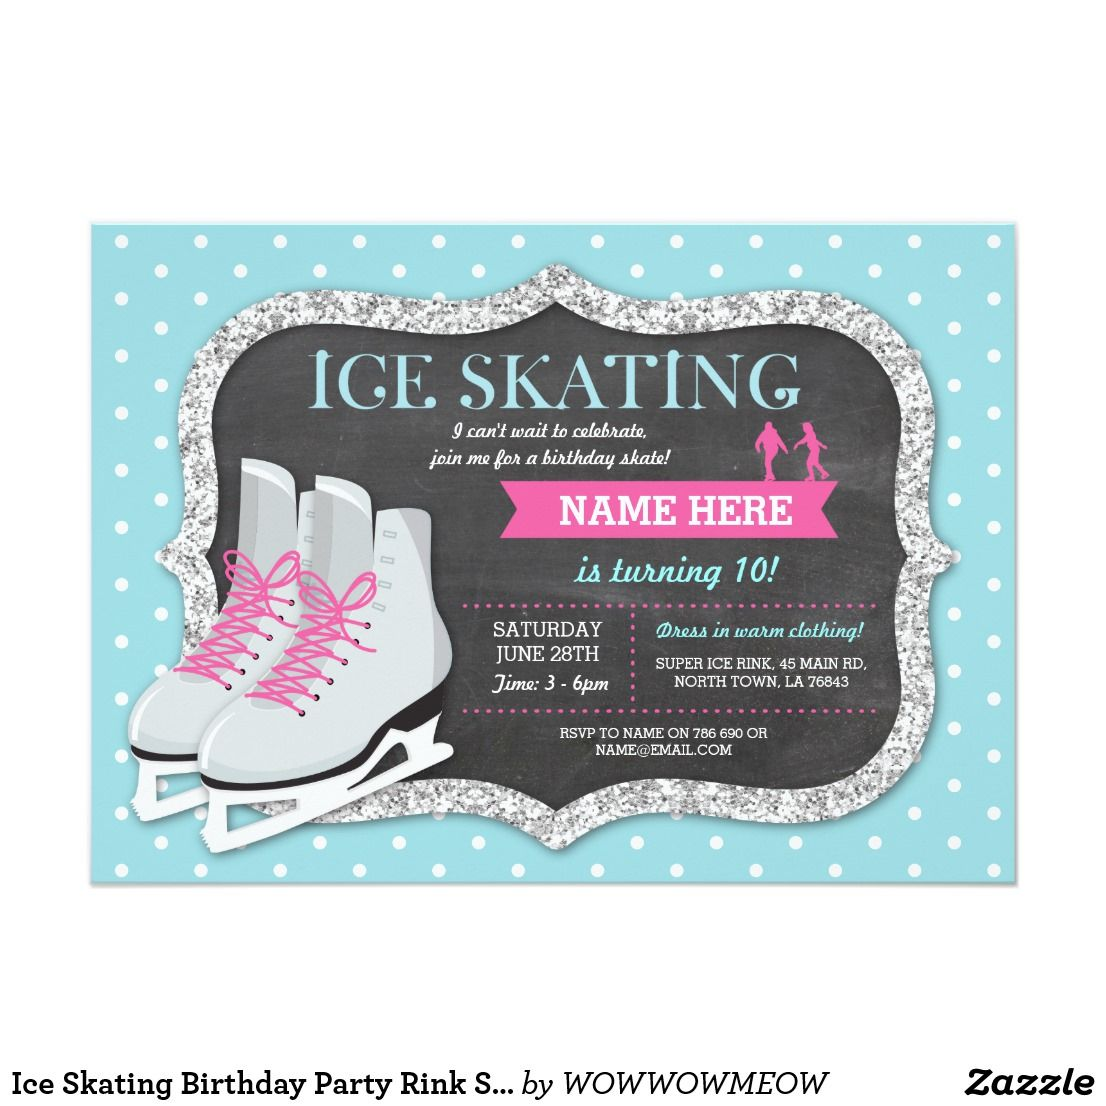 Ice Skating Birthday Party Rink Skate Invite | Skating party and ...